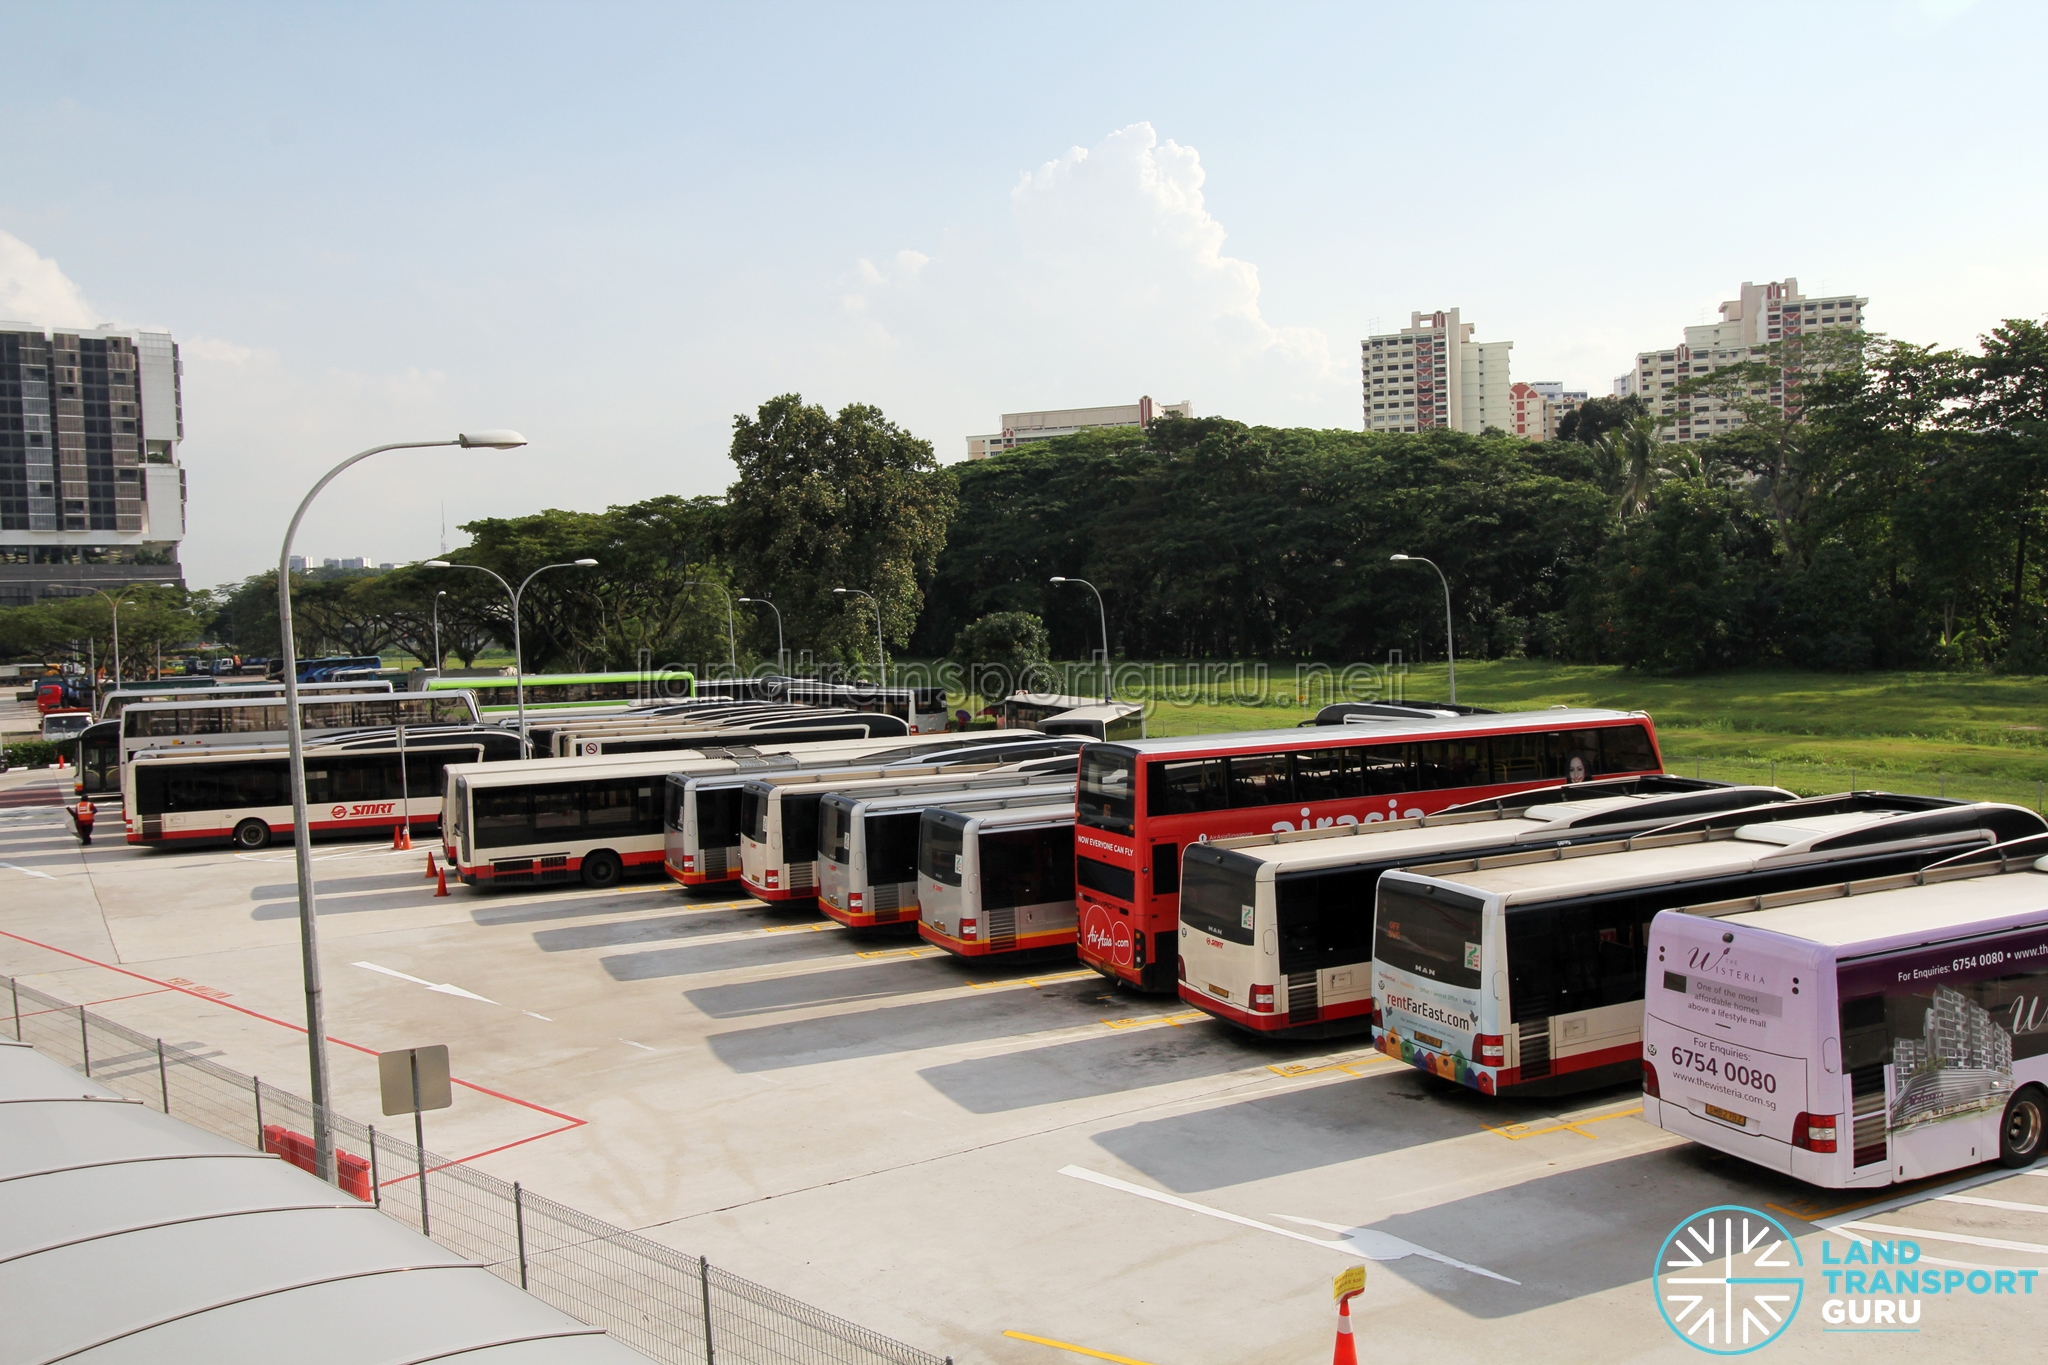 Bukit Panjang Temporary Bus Park Land Transport Guru